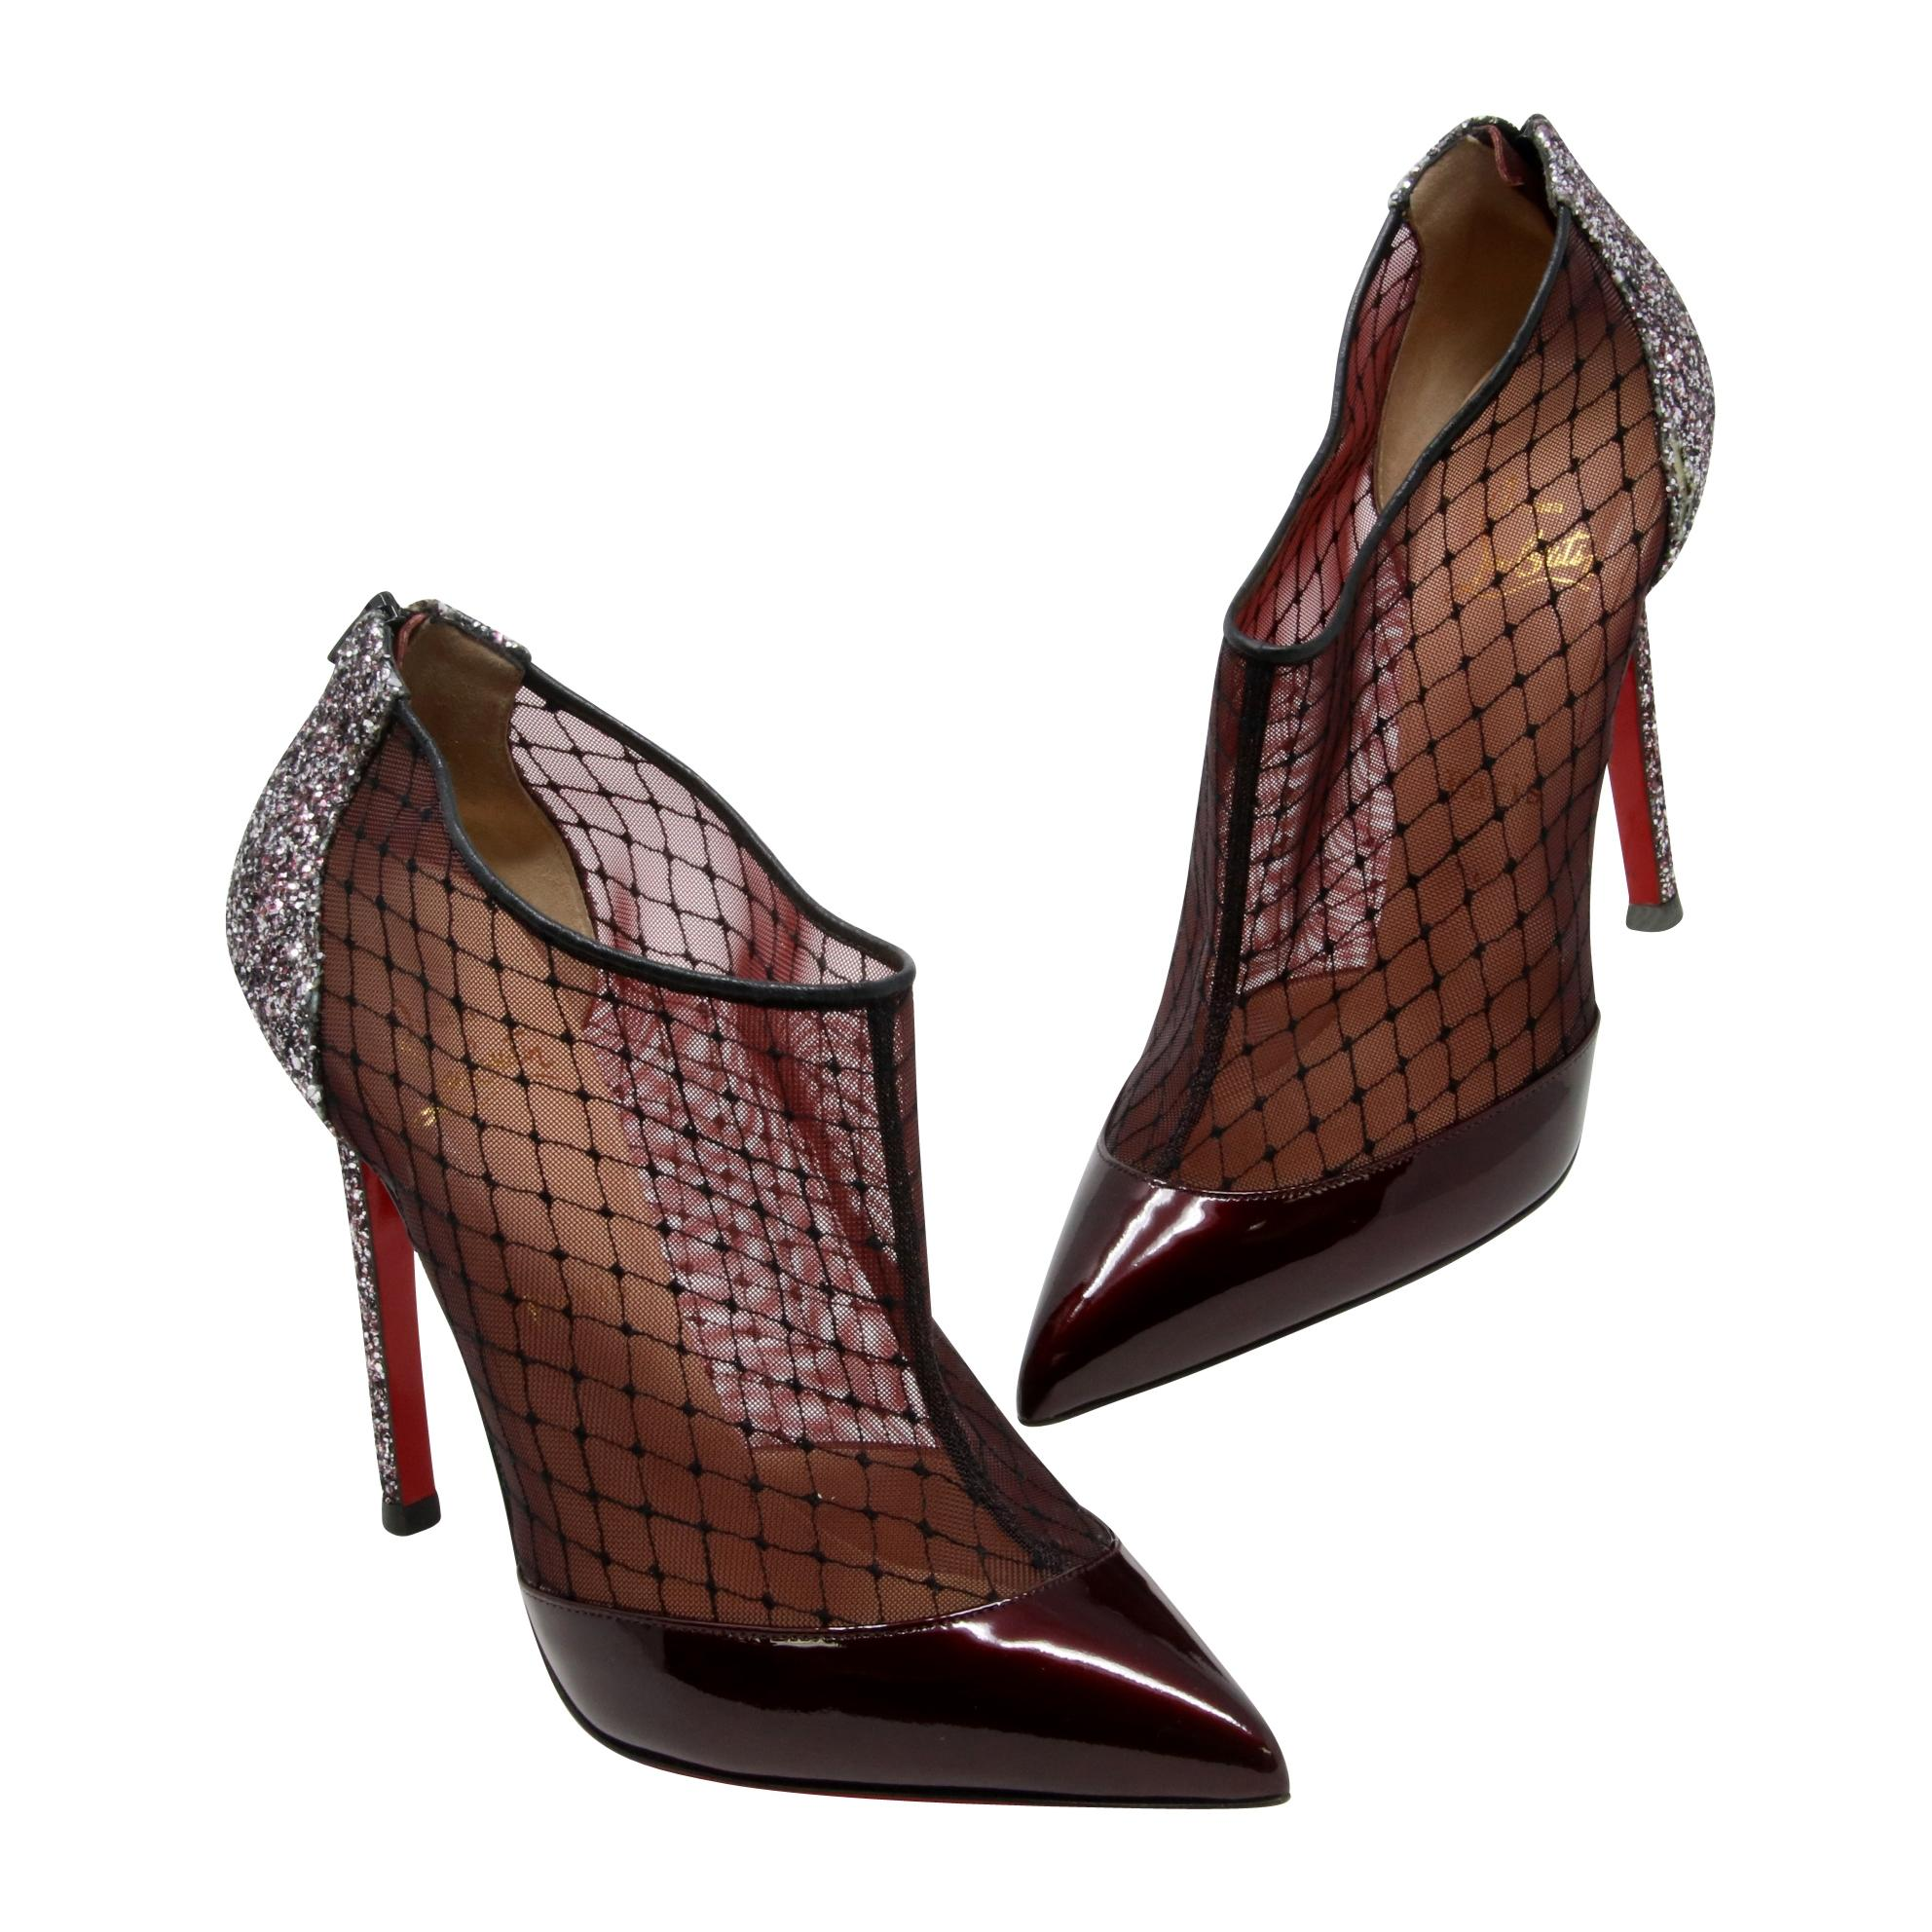 56ffc9d57da Christian Louboutin Multicolor Burgundy Fillette Patent Leather Mesh Mesh  Mesh Net Glitter-heel Pointed Toe 39.5 Boots Booties Size US 9.5 Regular  (M